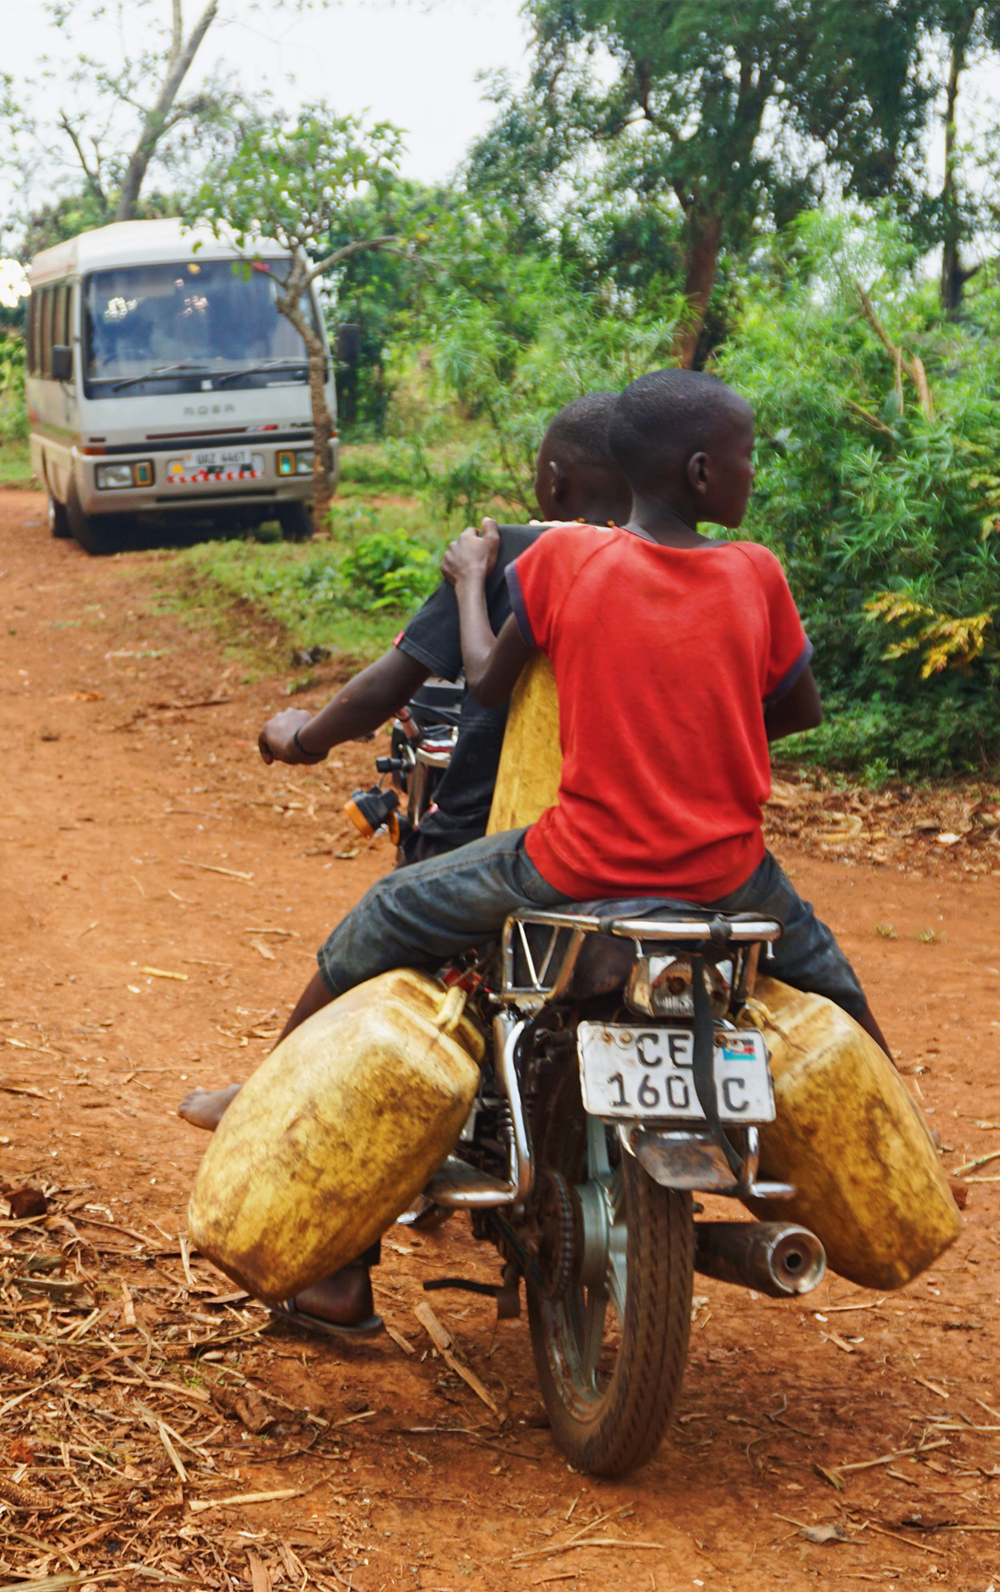 People on a motor bike in Uganda. Source: Melissa Askew via Unsplash